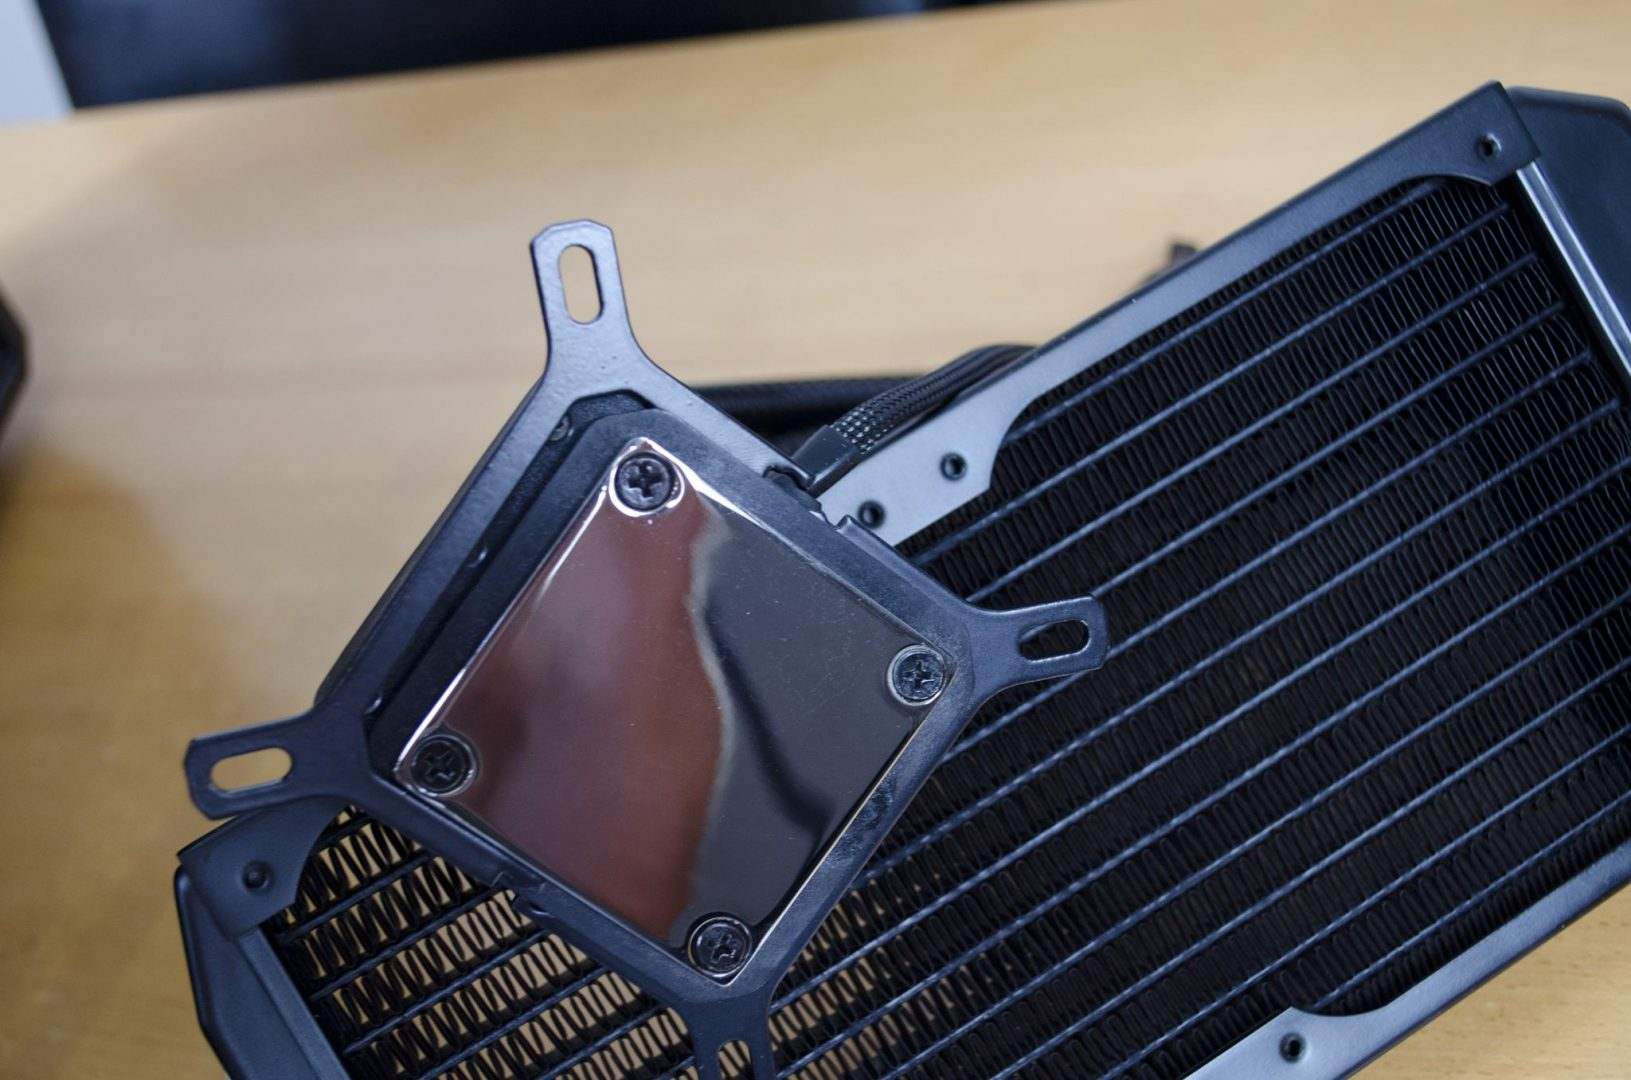 be-quiet-silent-loop-240-mm-aio-cpu-cooler-review_13